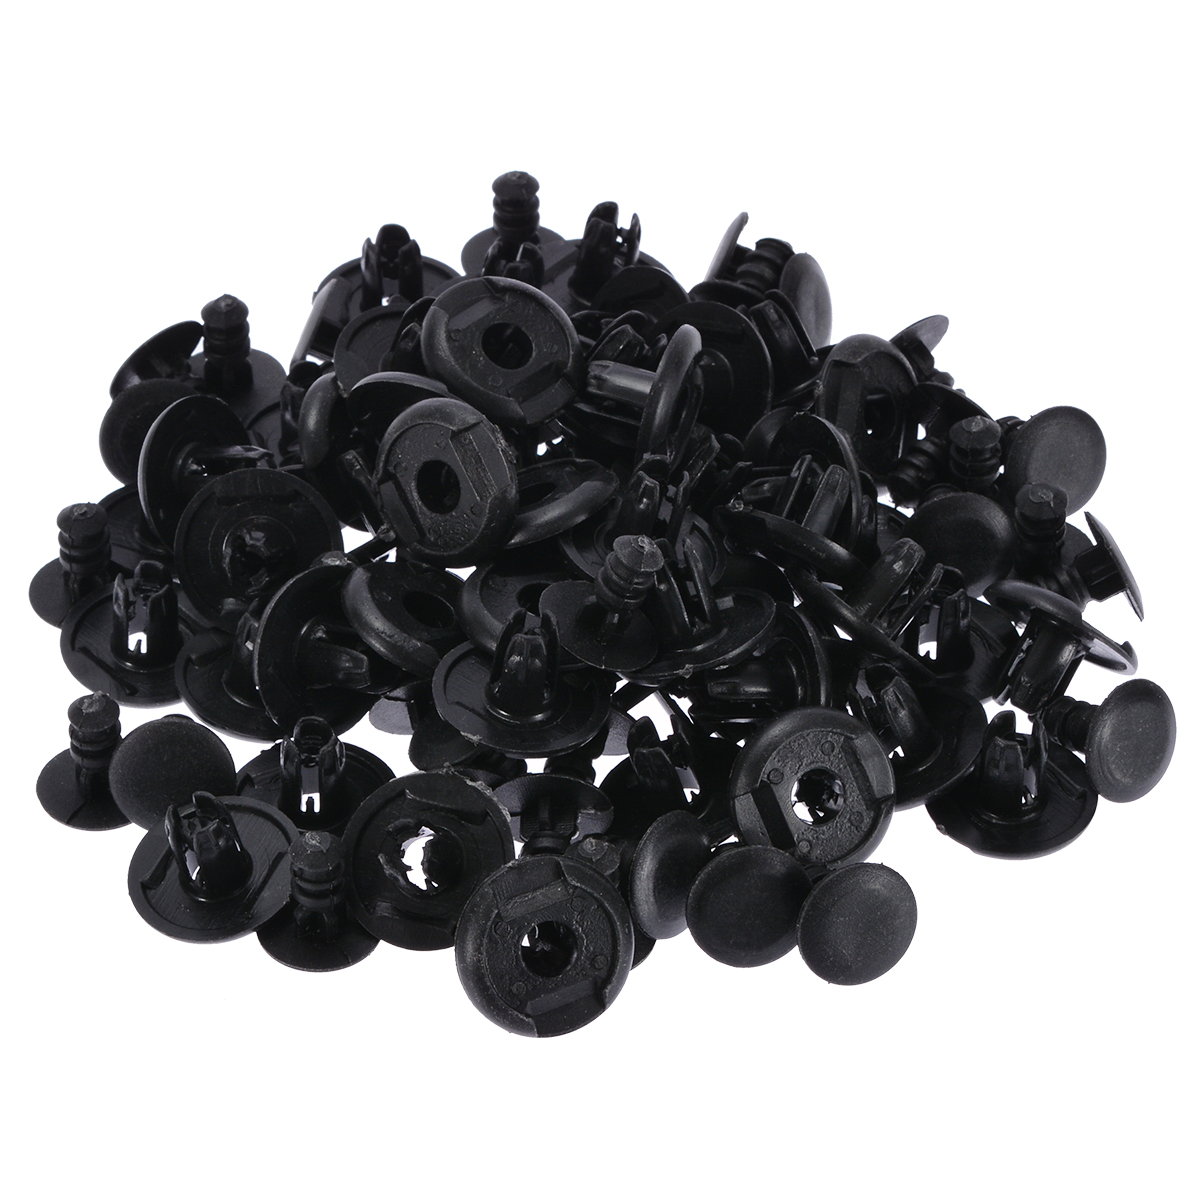 Treyues 50pcs Car Bumper Fender Retainer Clip For Suzuki Grand Vitara SX4 Swift X-90 XL-7 Wholesale